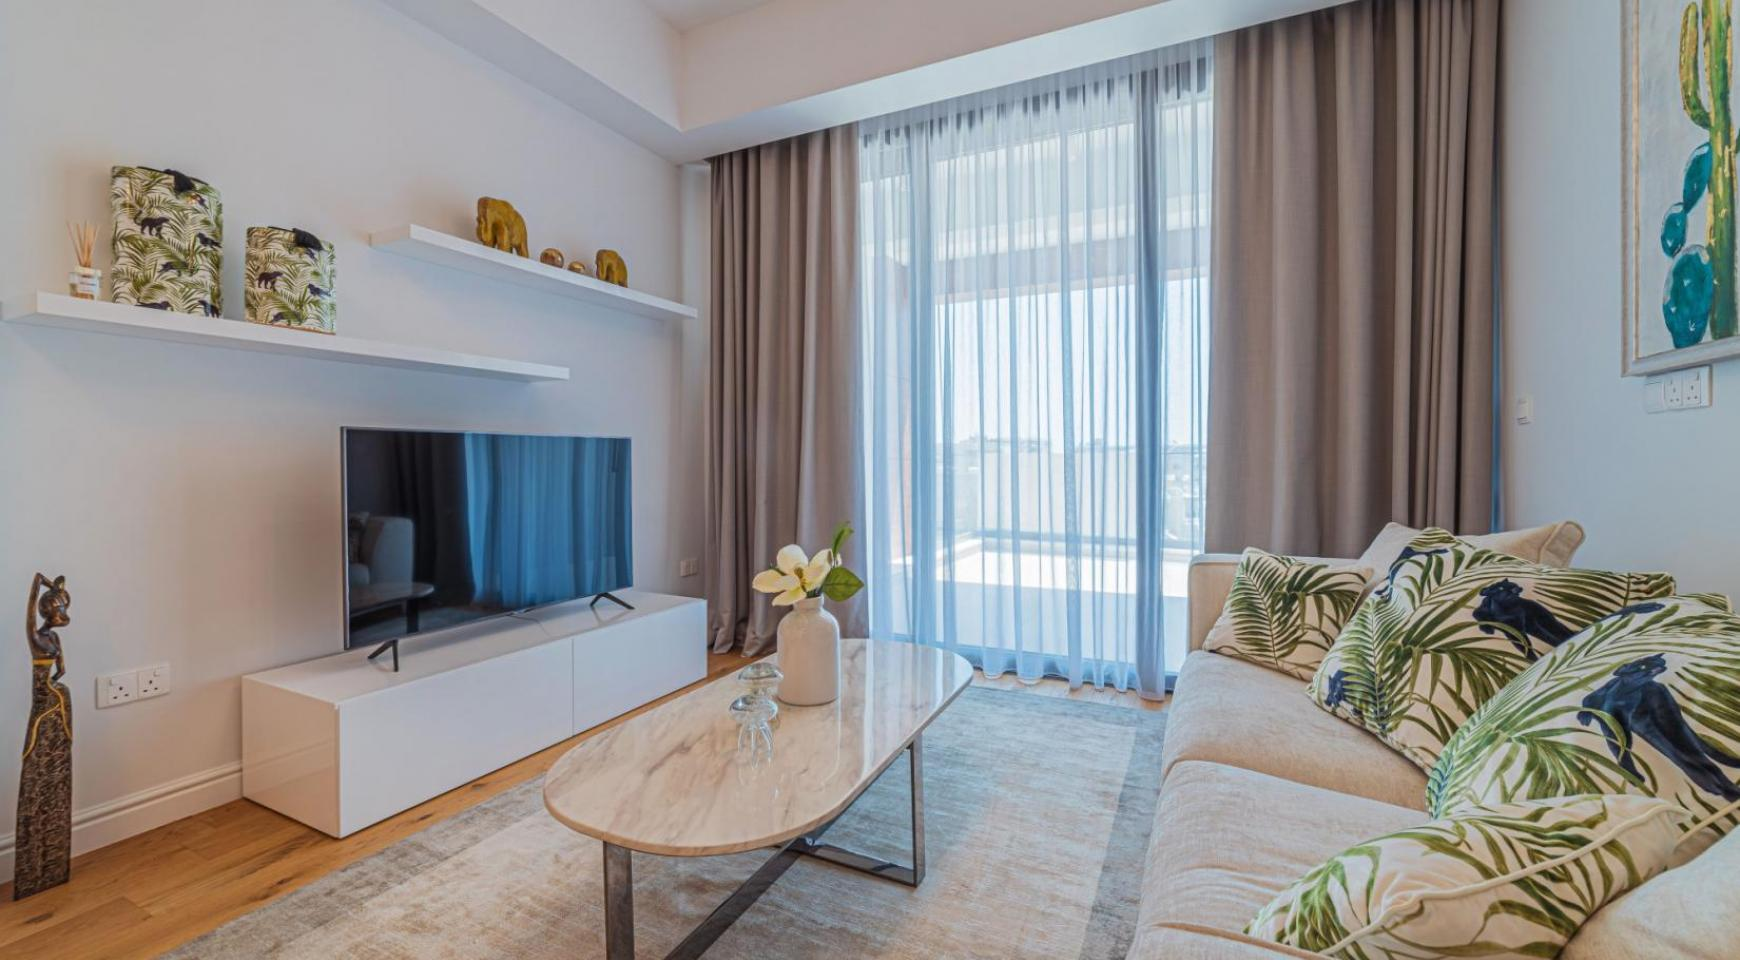 Hortensia Residence, Apt. 301. 2 Bedroom Apartment within a New Complex near the Sea  - 50